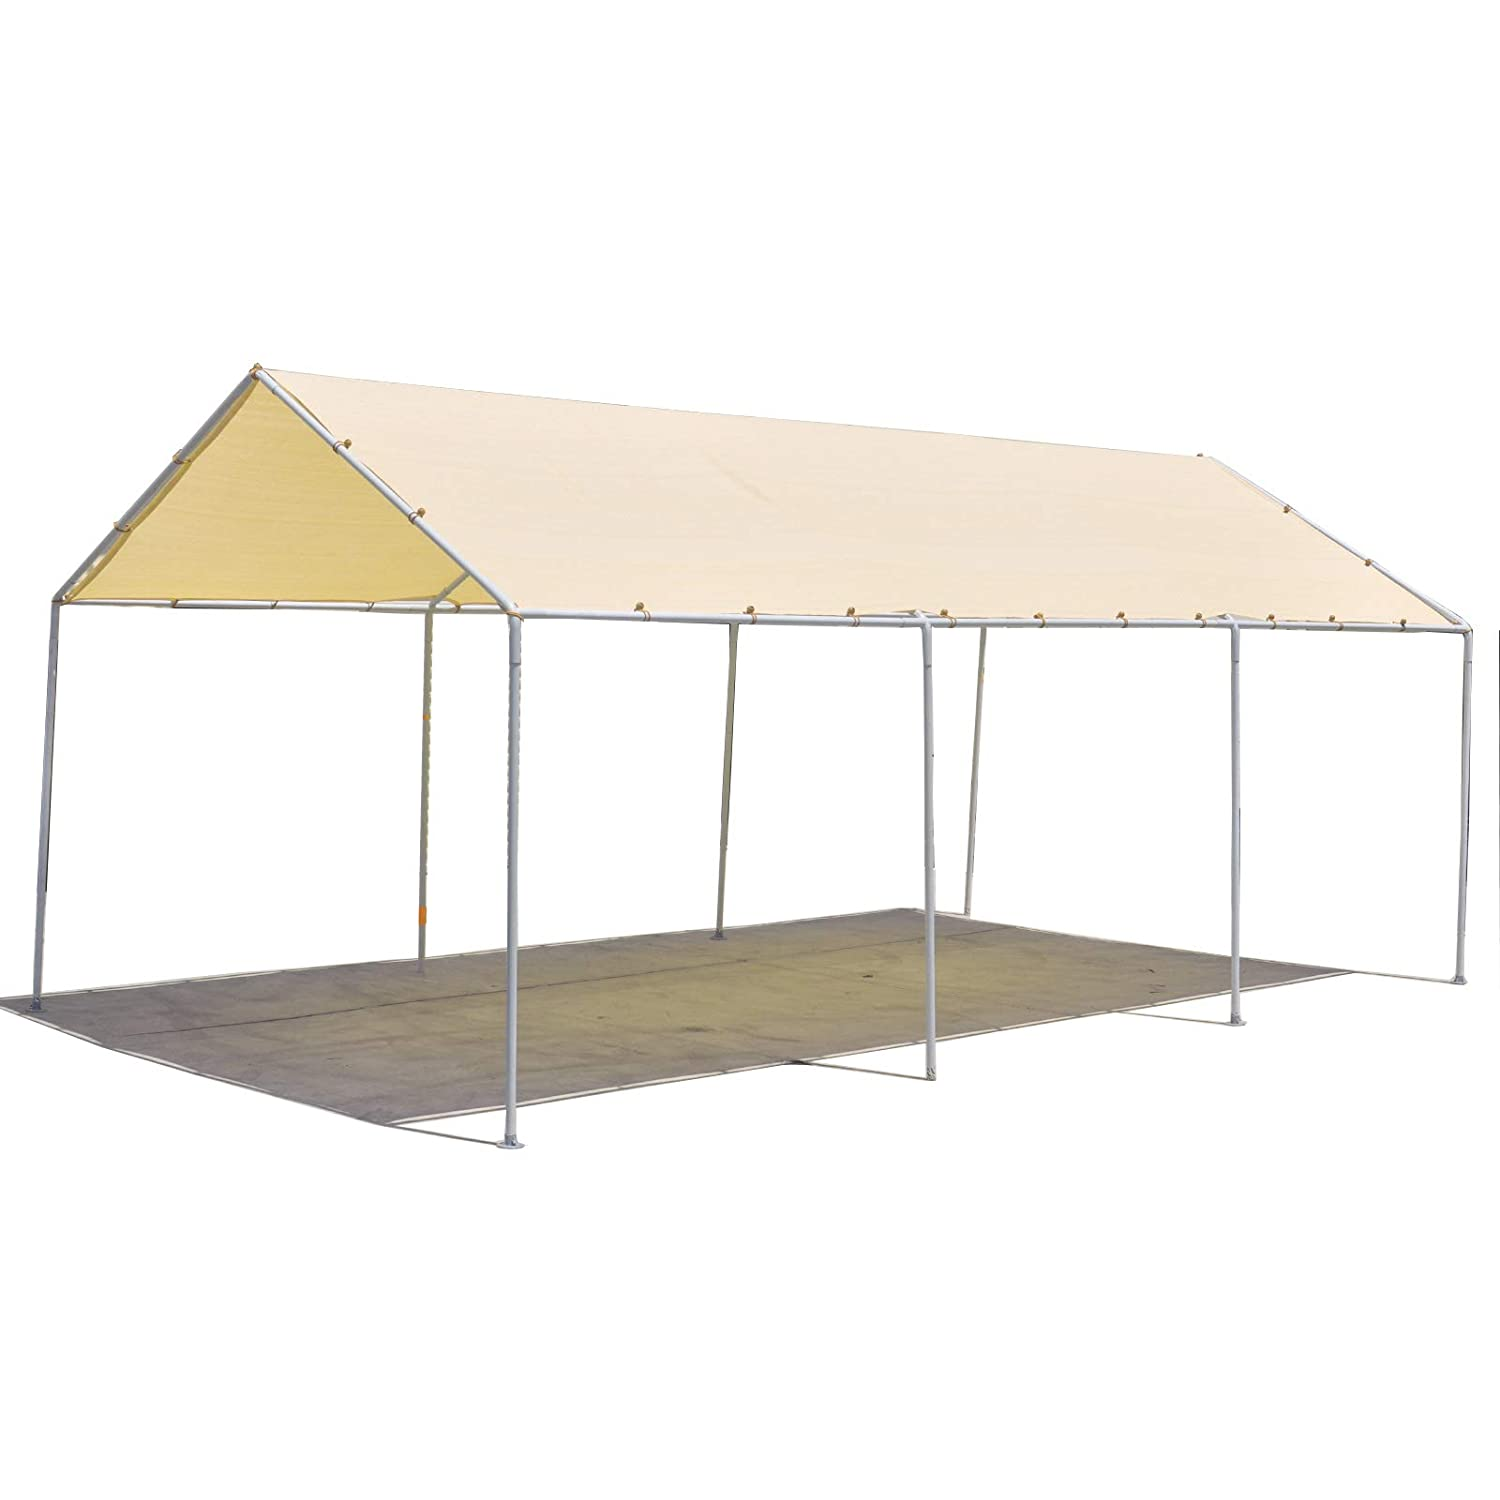 Alion Home Waterproof Woven Carport Canopy Replacement Shade Cover for Low & Medium Peak(Frame Not Included) (10' x 7', Desert Sand) AH-WCRC-DS1007